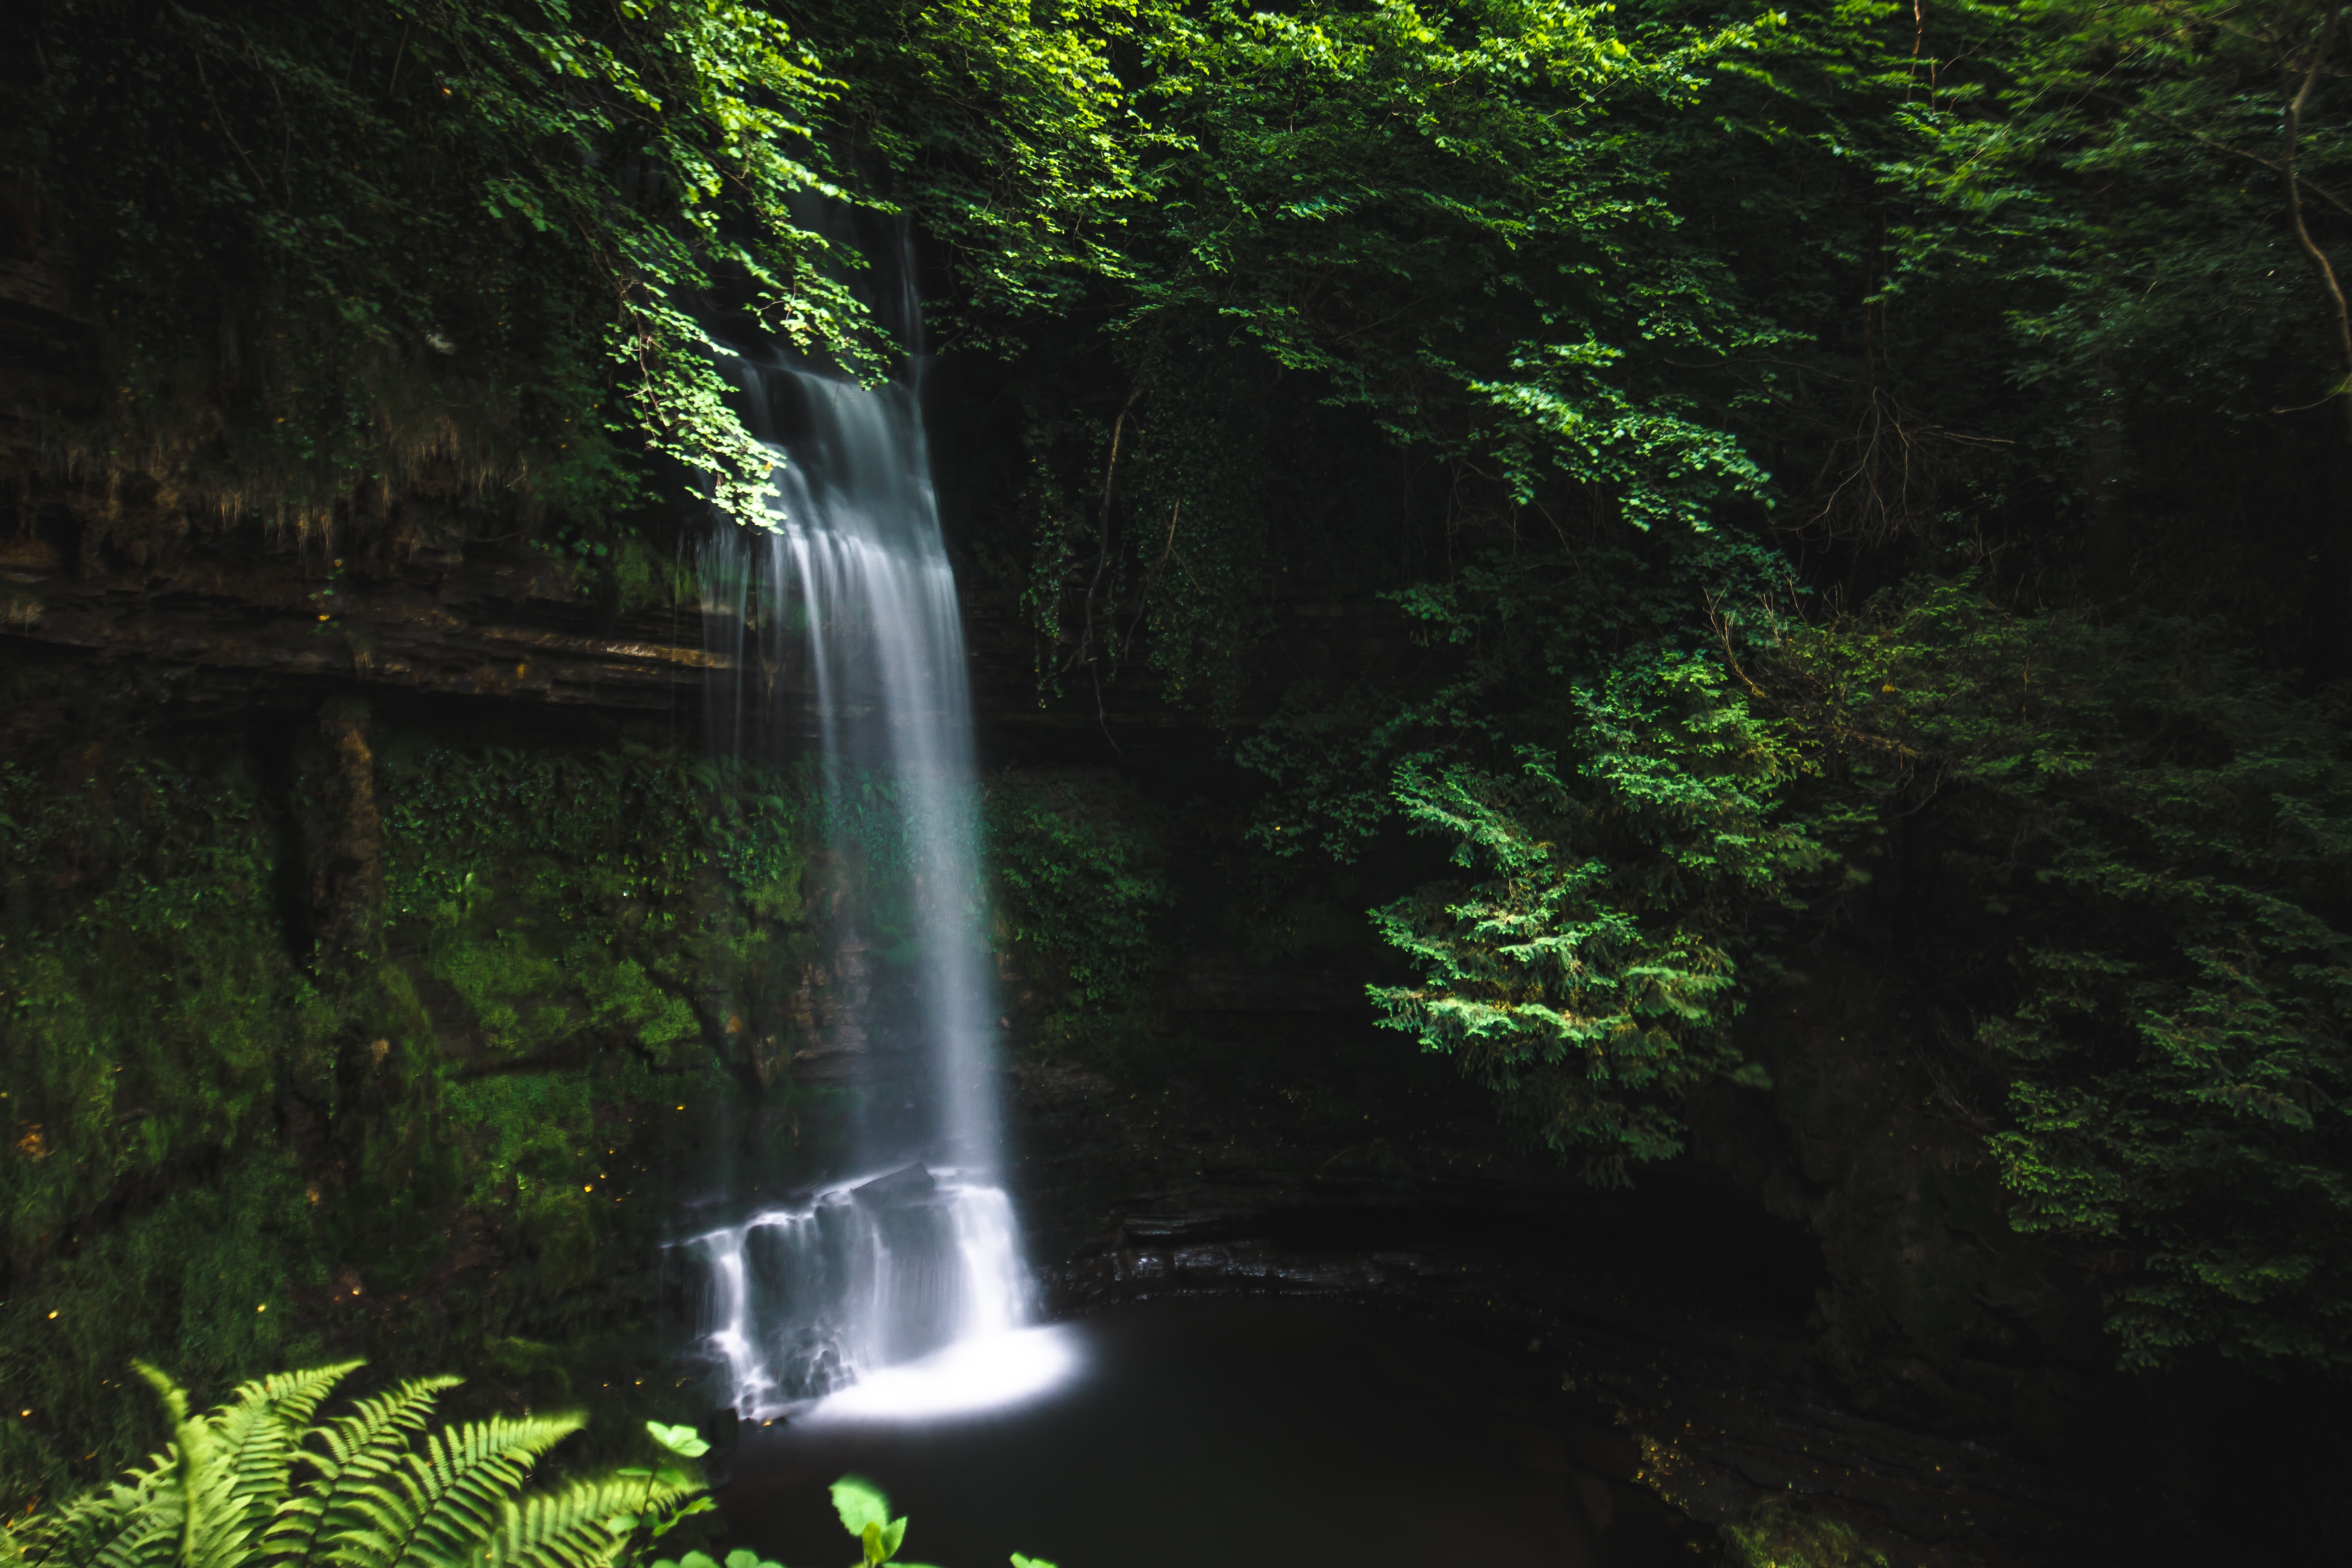 scenery of a waterfall